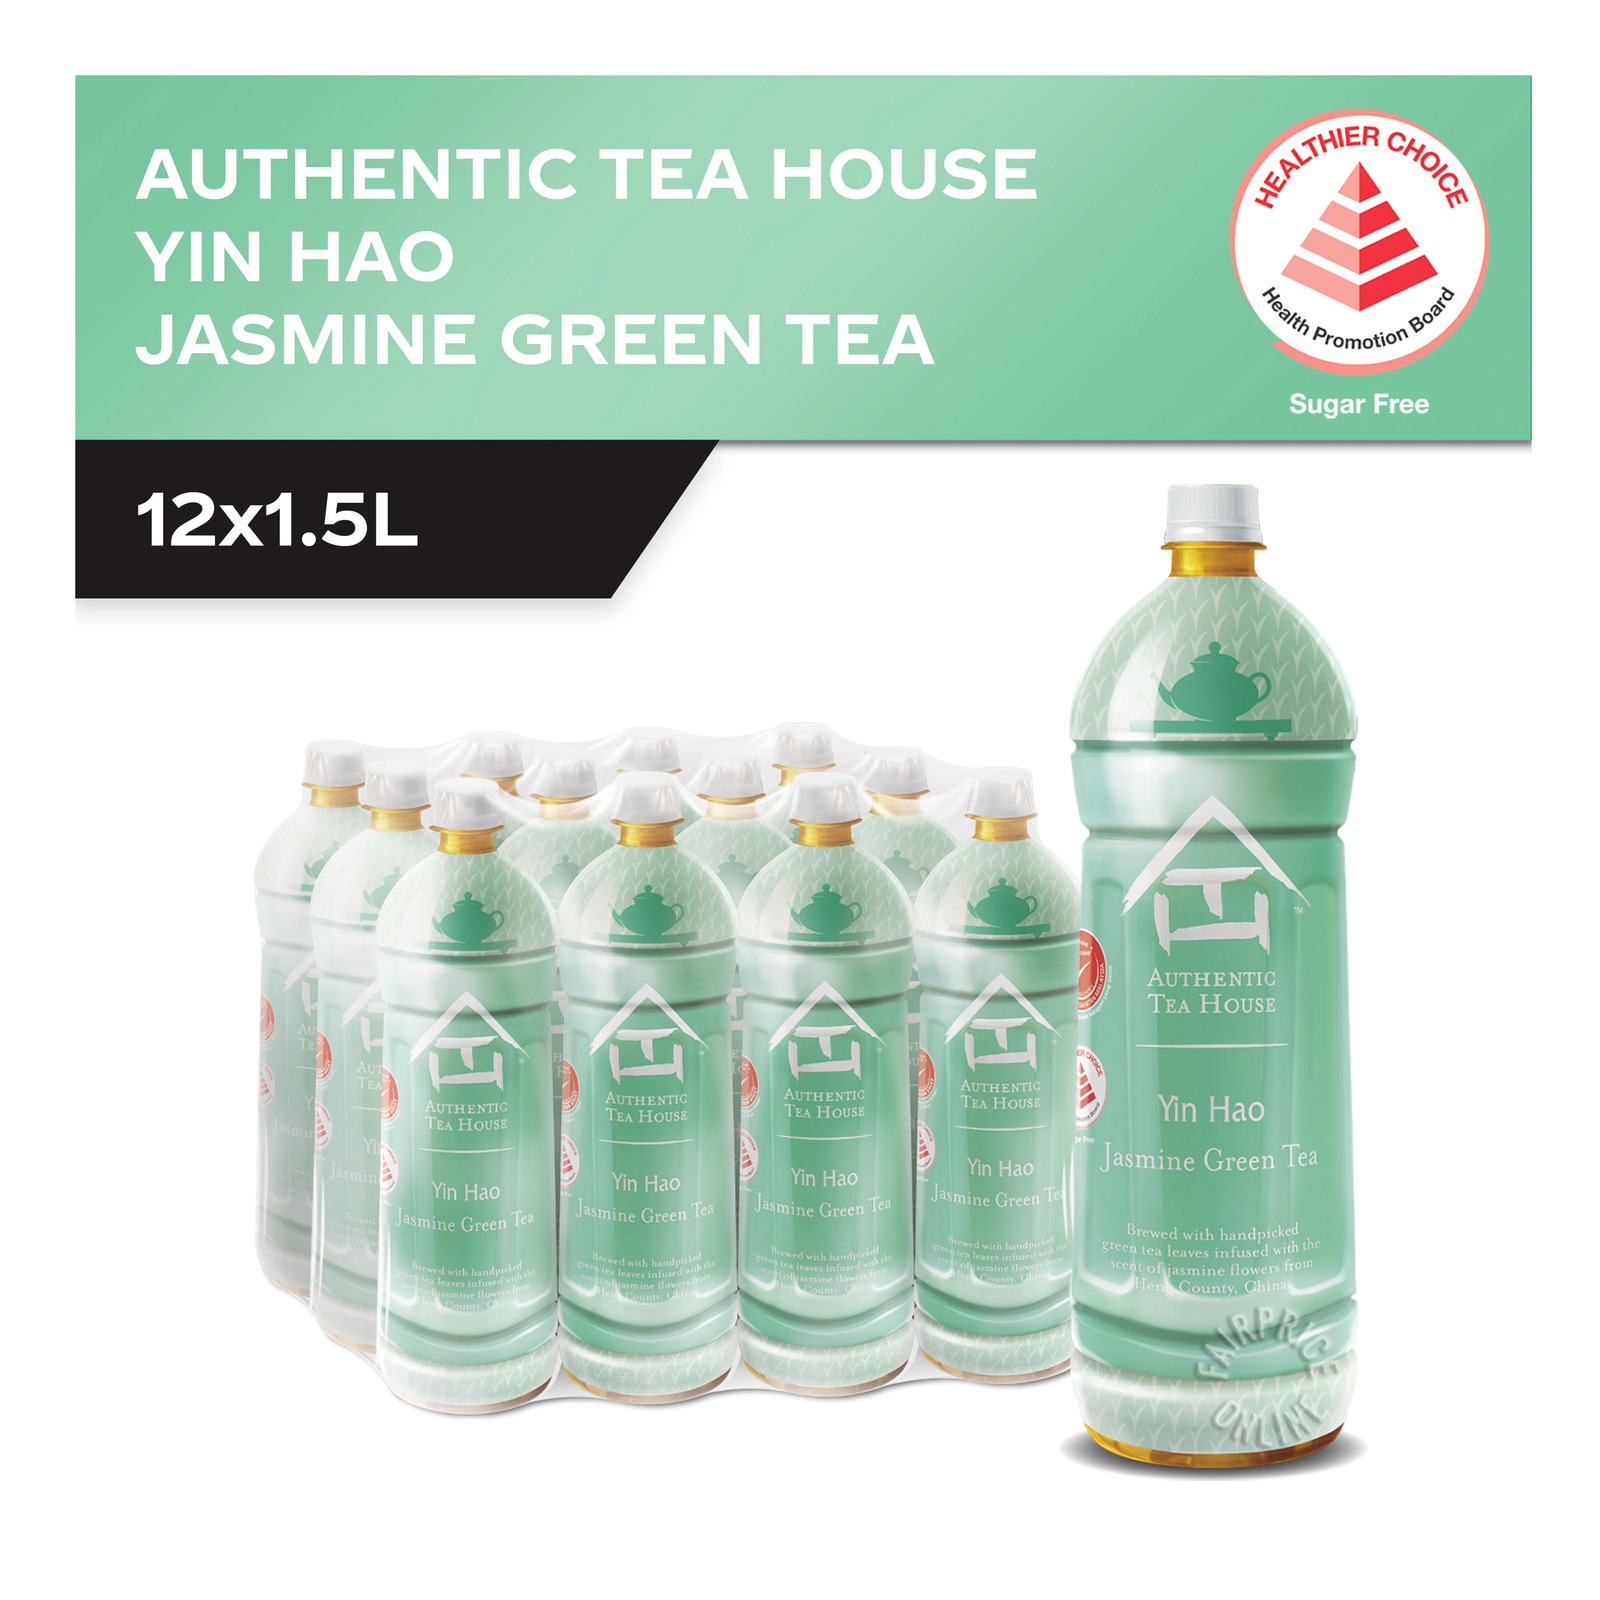 Authentic Tea House Bottle Drink - Jasmine Green Tea